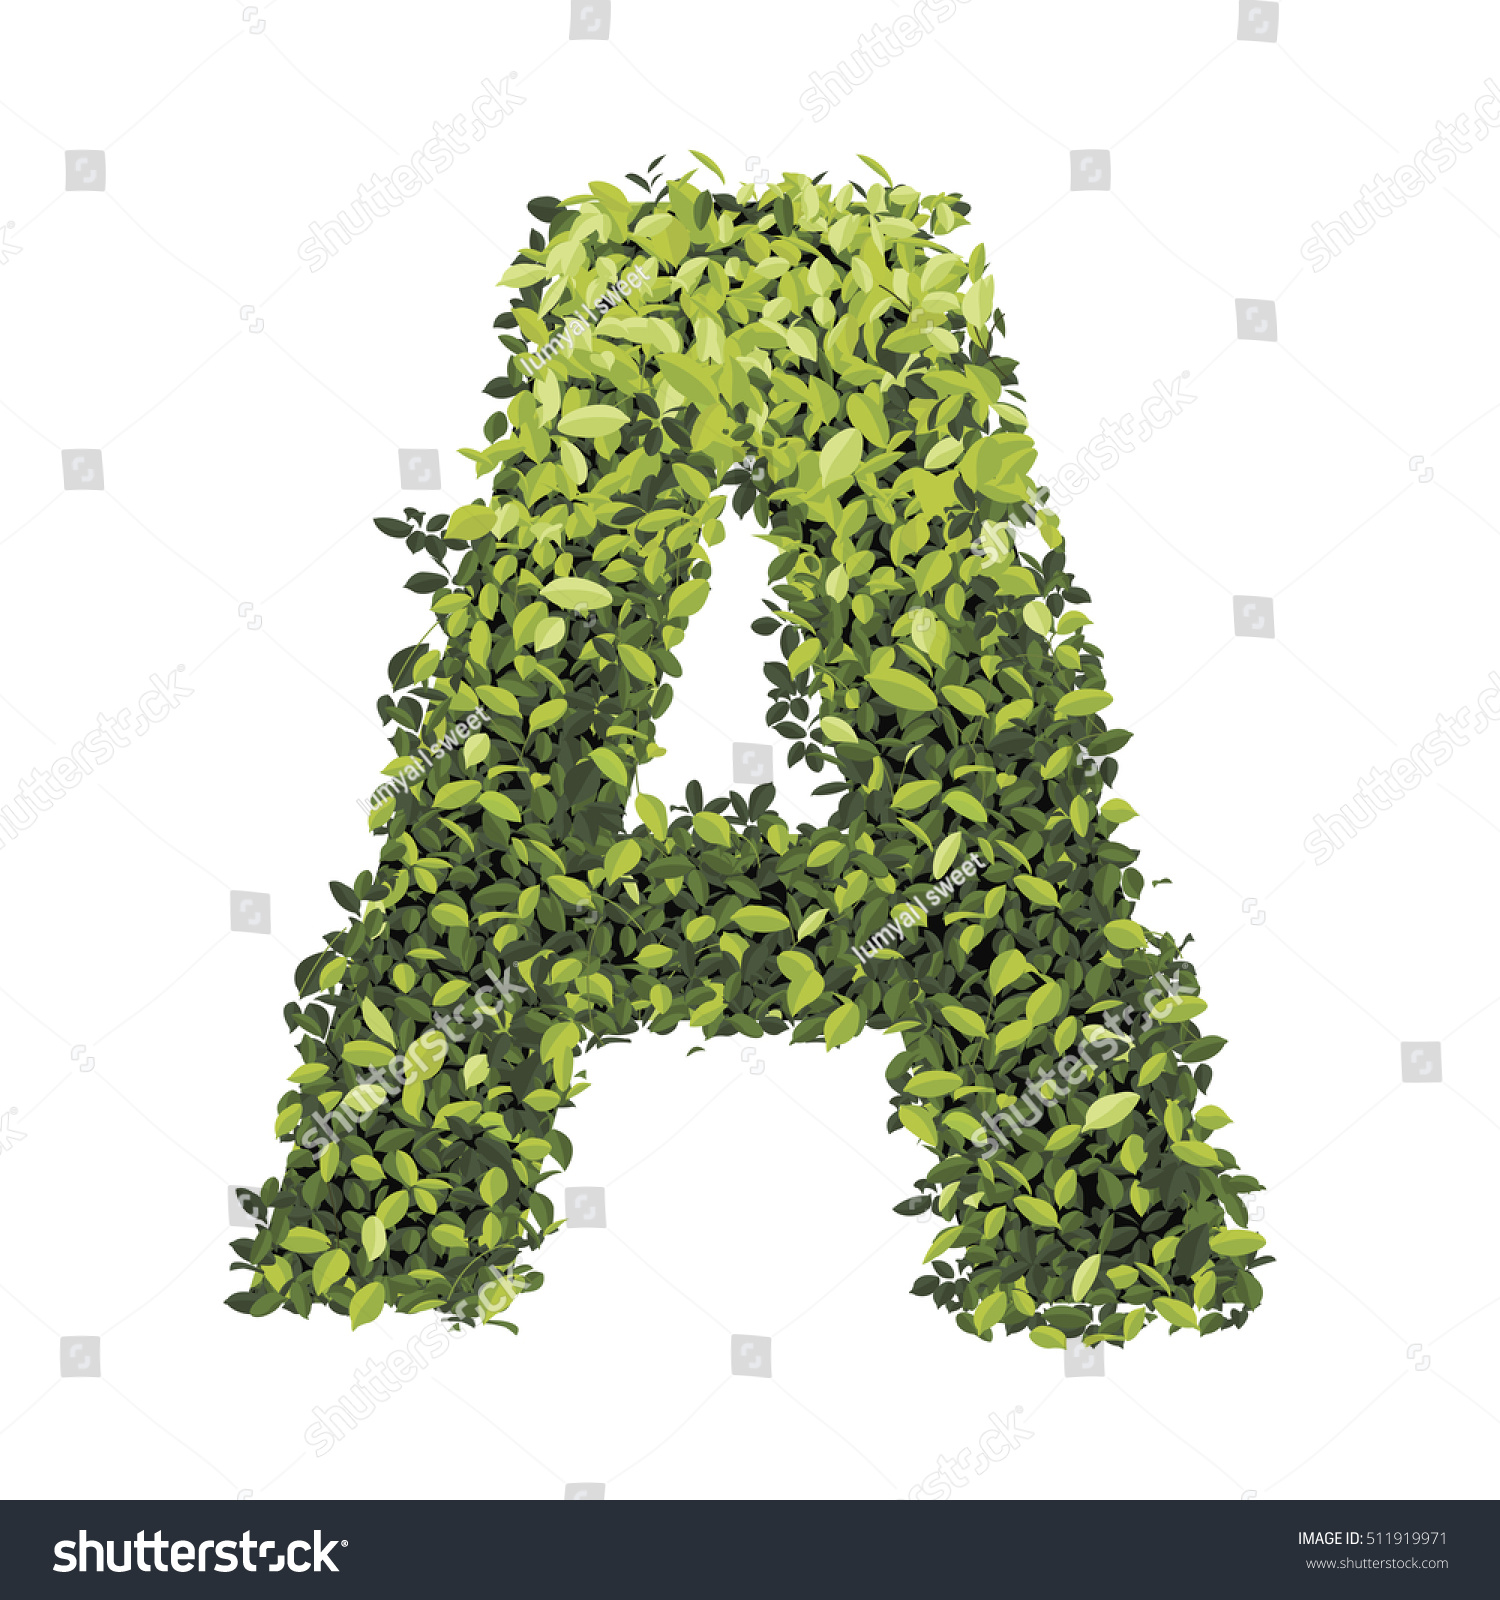 Alphabet green leaves collection decorative symbols stock vector alphabet of green leaves collection decorative symbols isolated on white background biocorpaavc Gallery